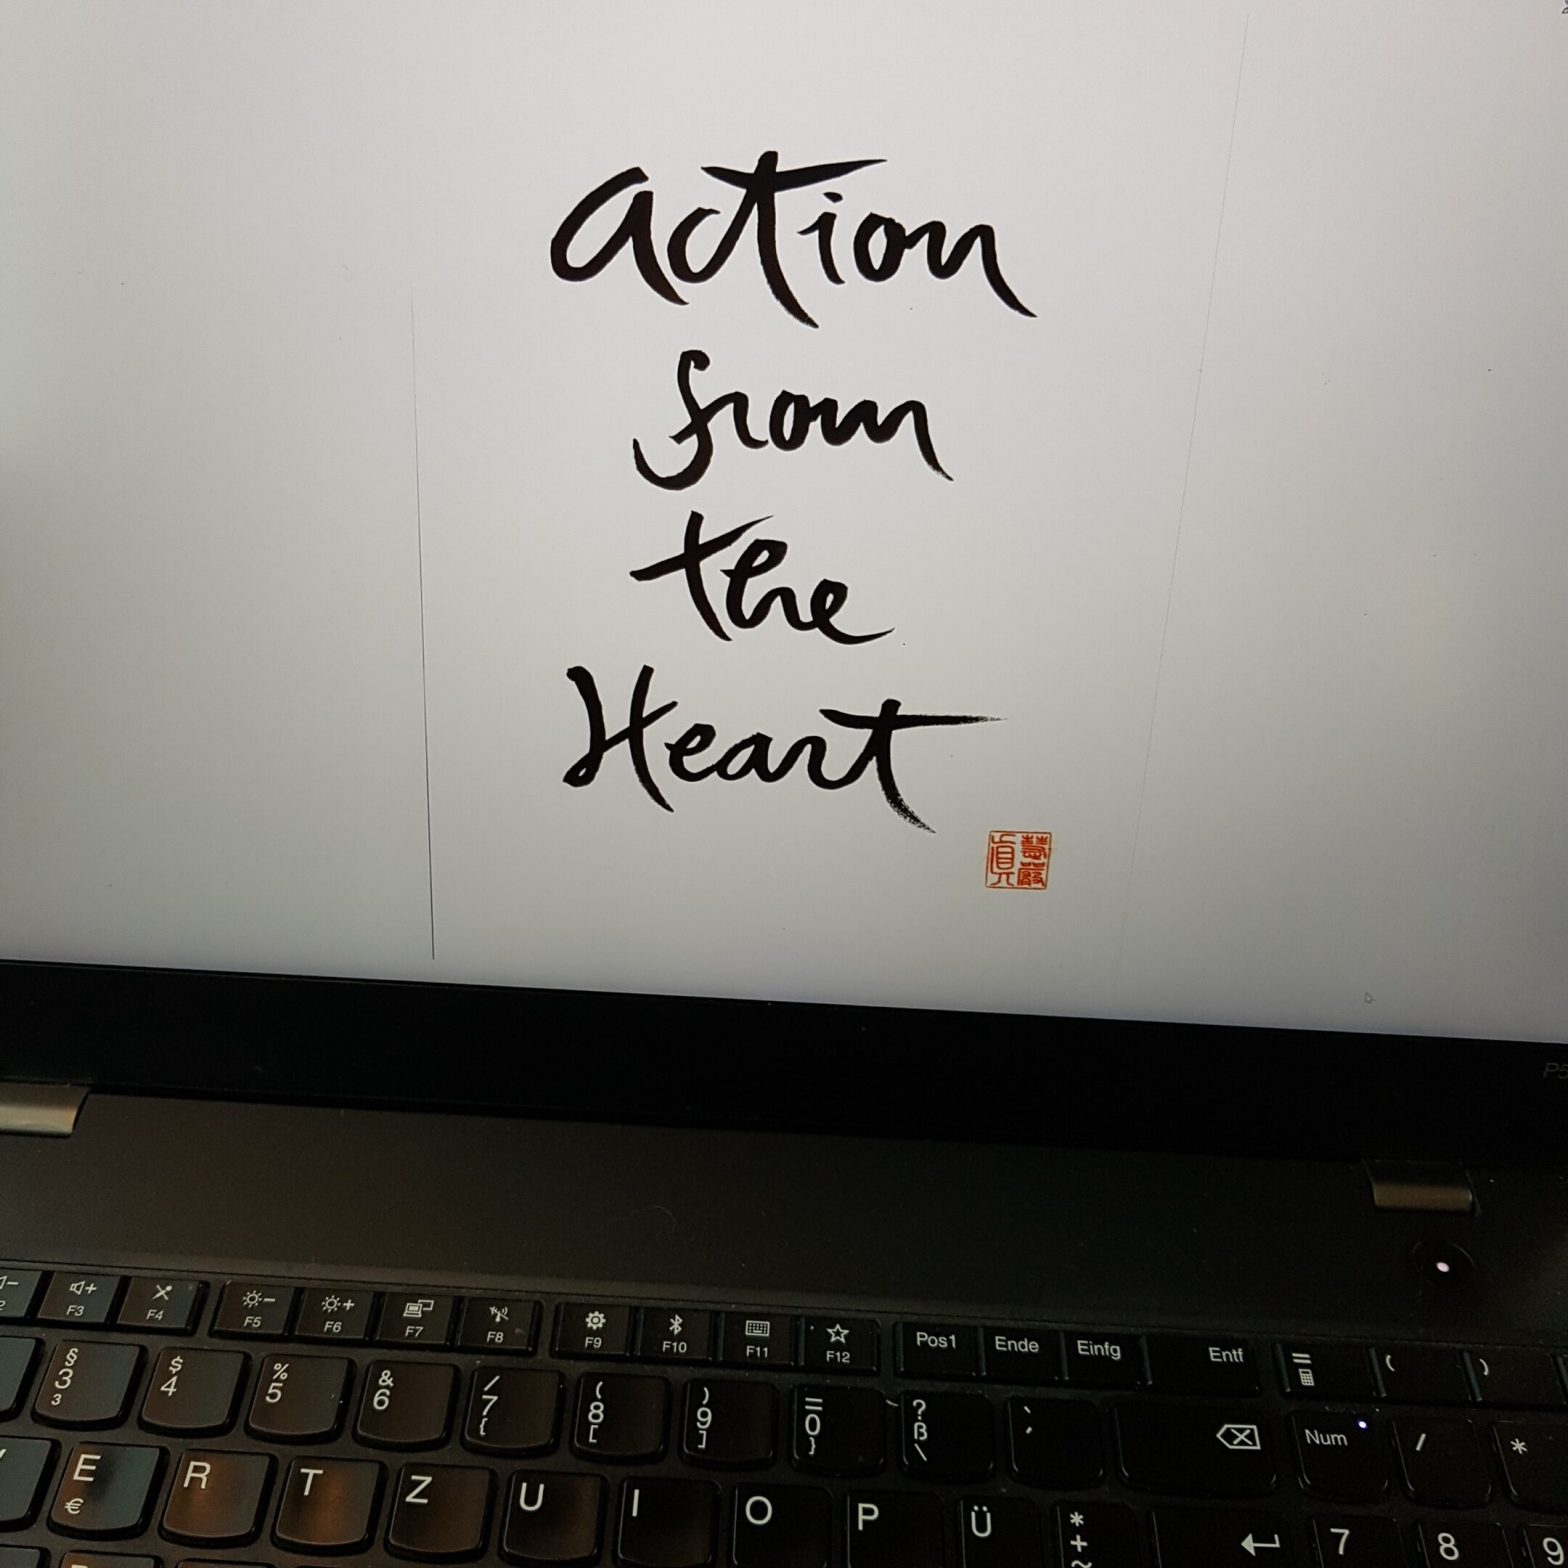 """Plum Village Online Retreat """"Action from the heart"""""""